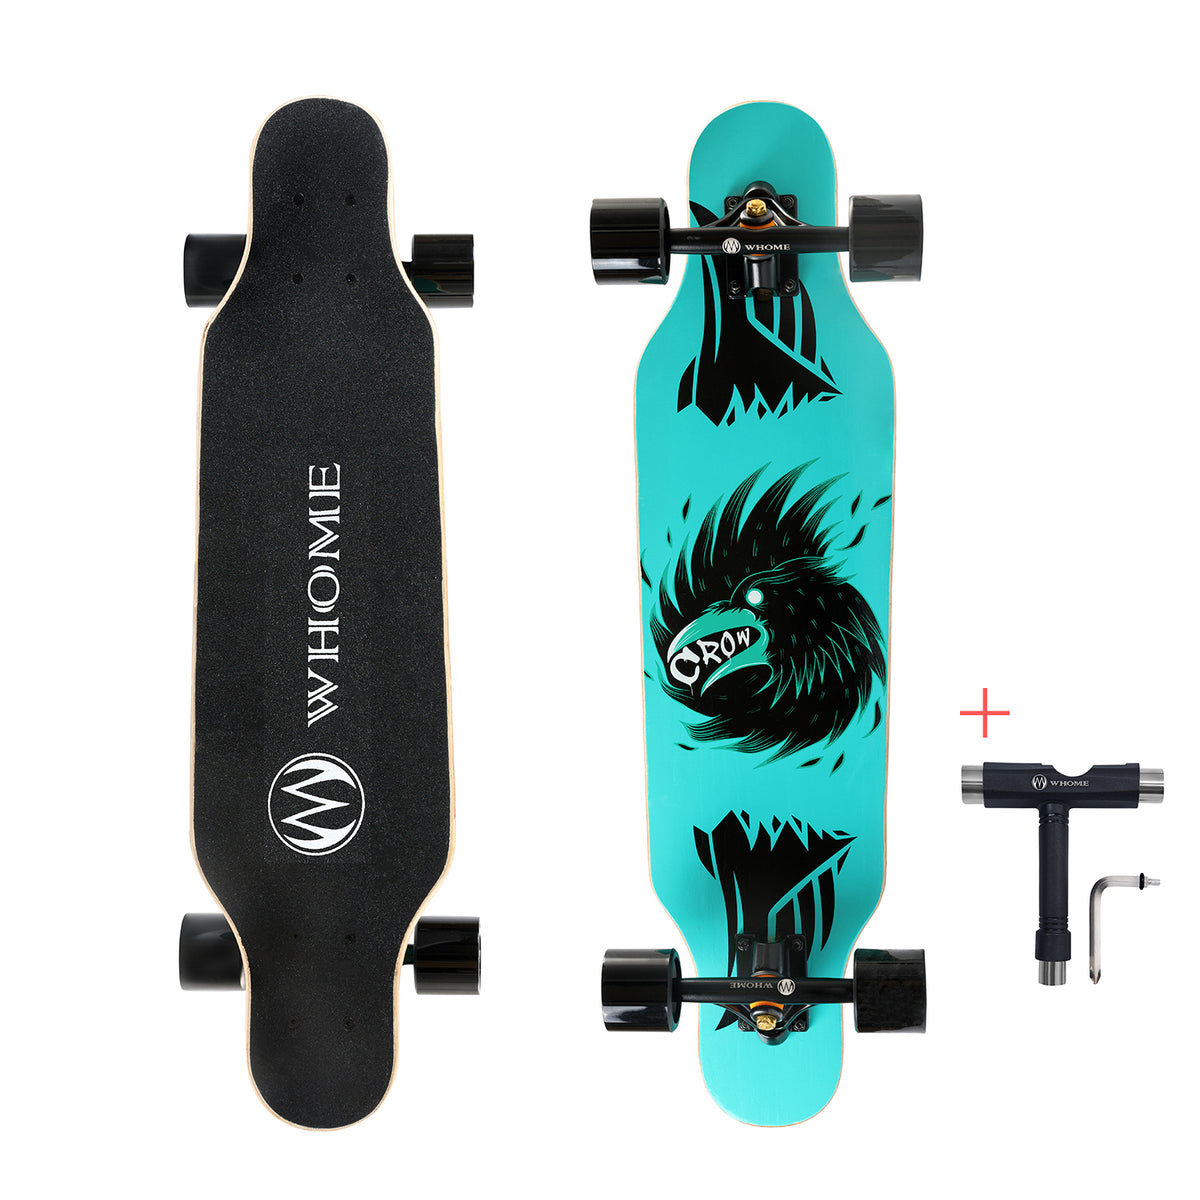 31 Inch Small Longboard Skateboard Complete Carving Cruiser Skateboards